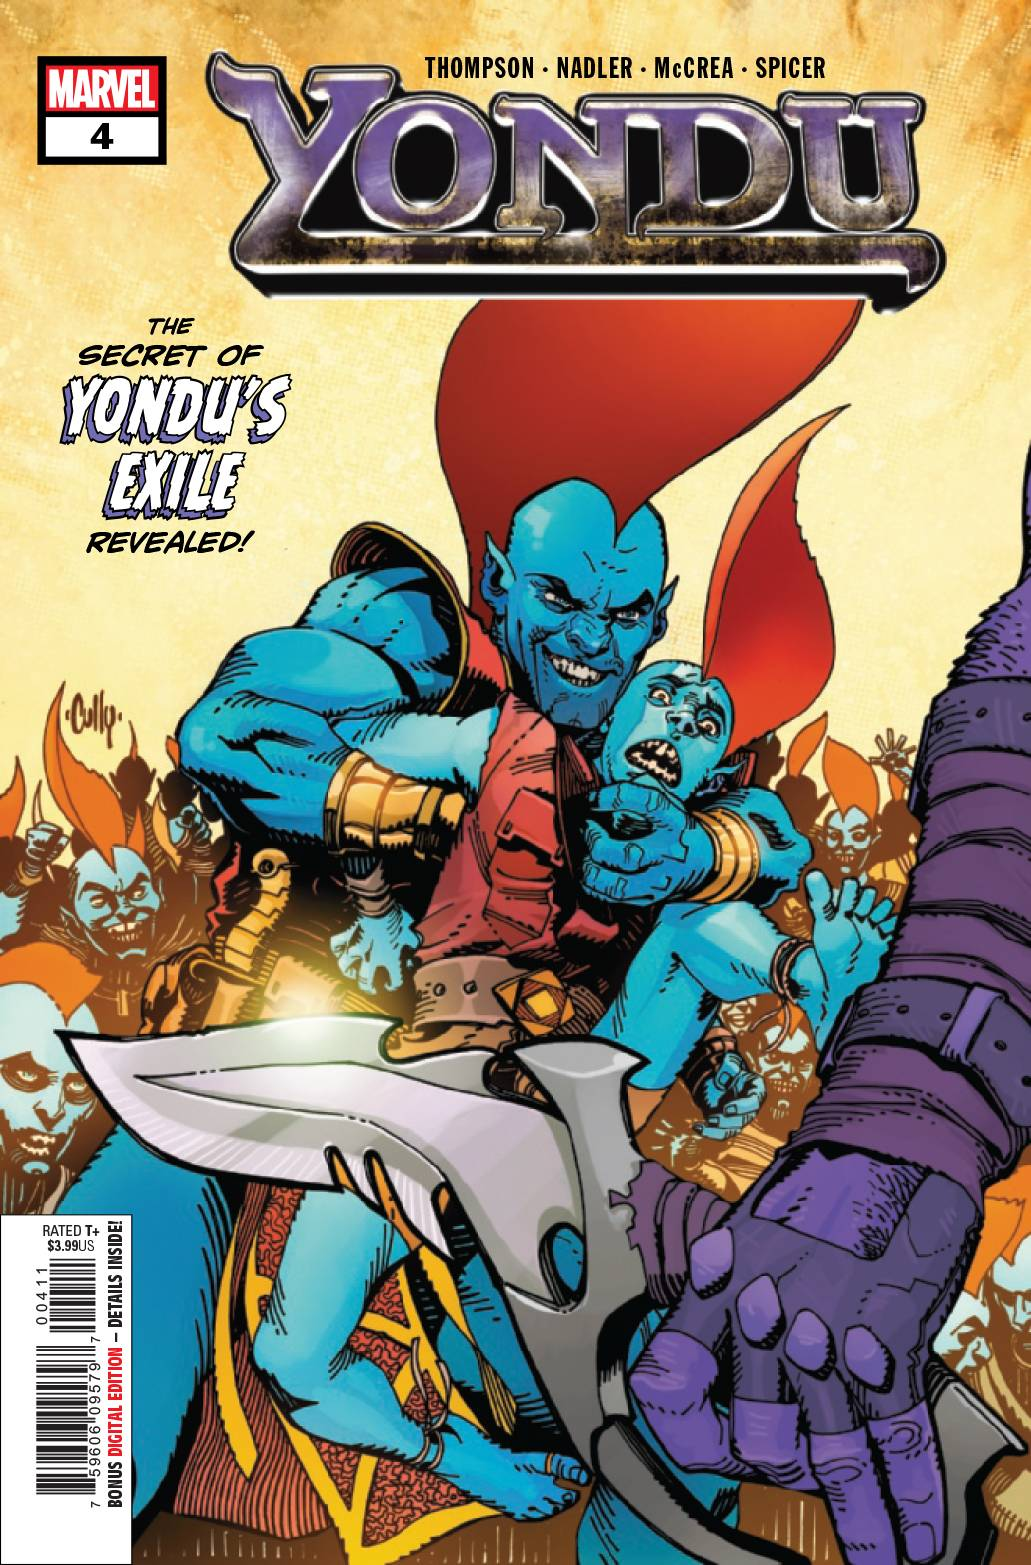 YONDU #4 (OF 5)